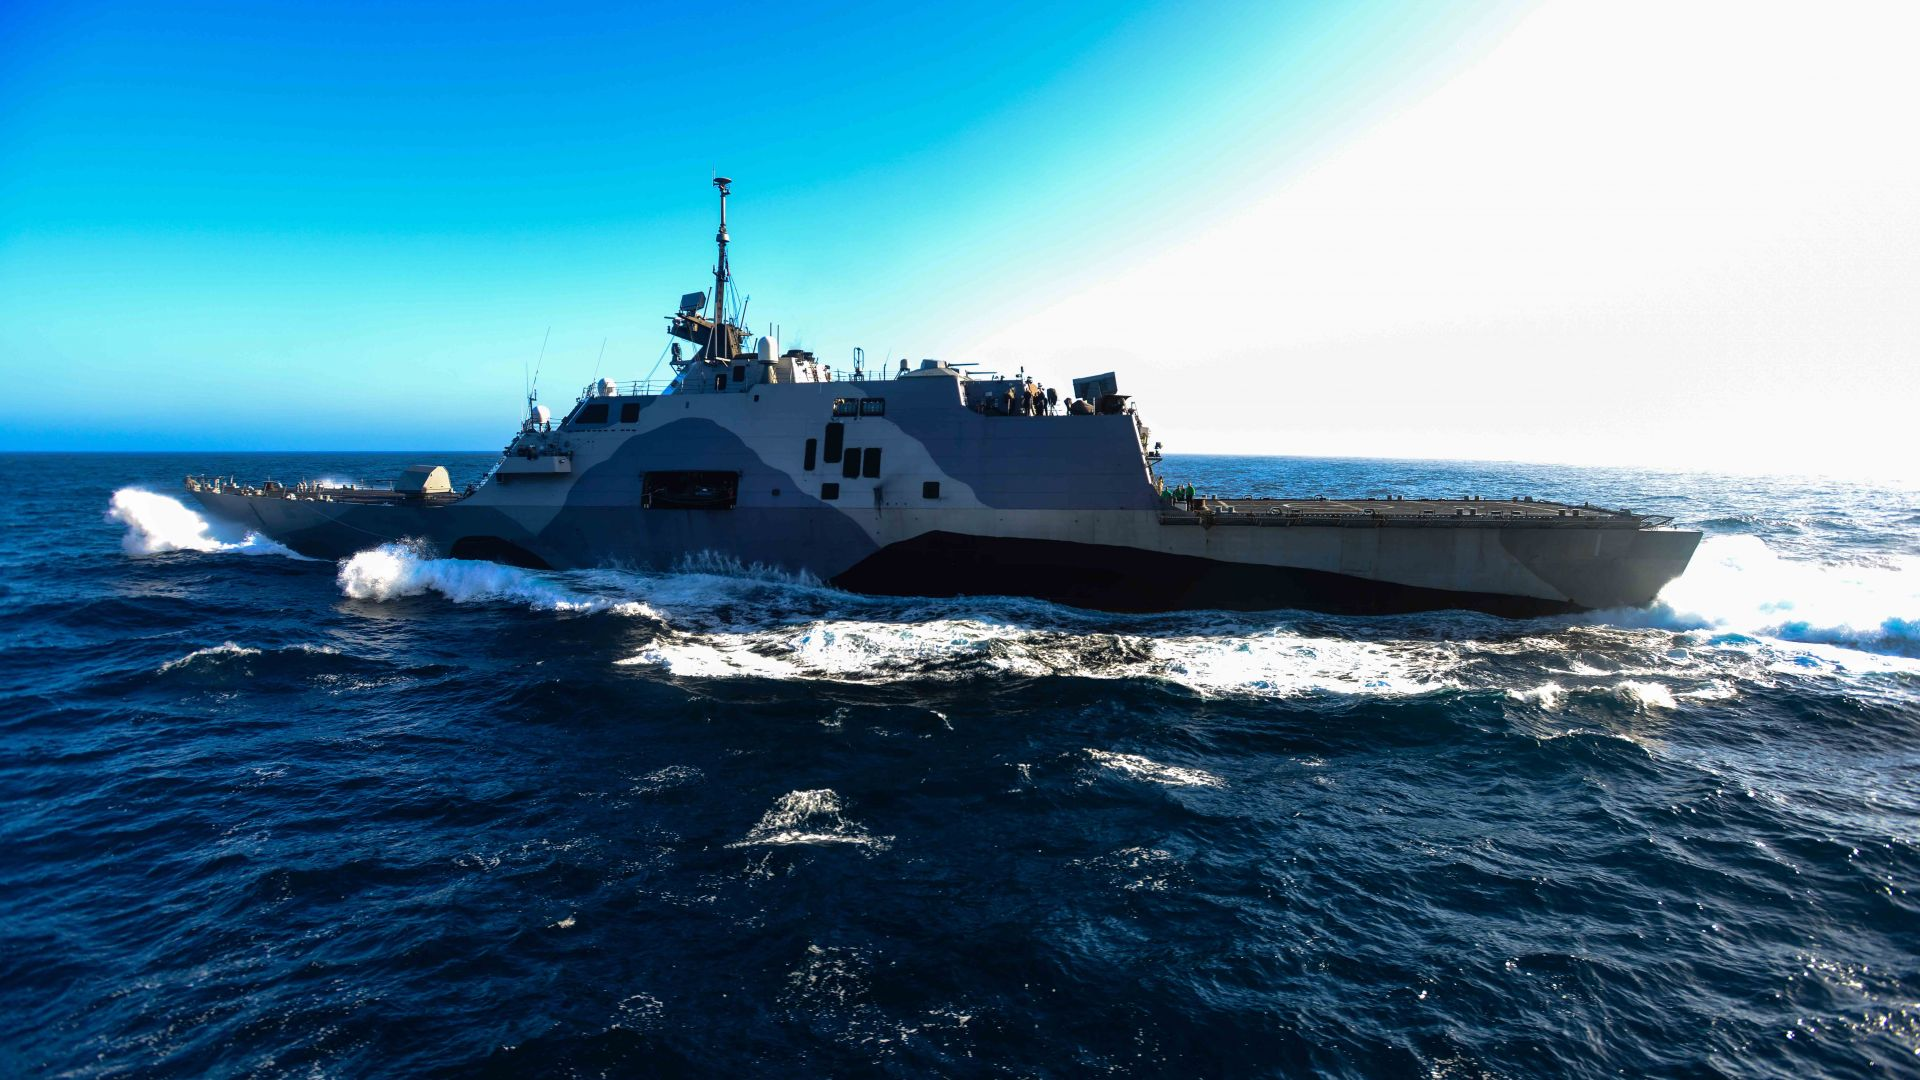 USS Freedom Wallpaper Military USS Freedom LCS 1 lead ship 1920x1080